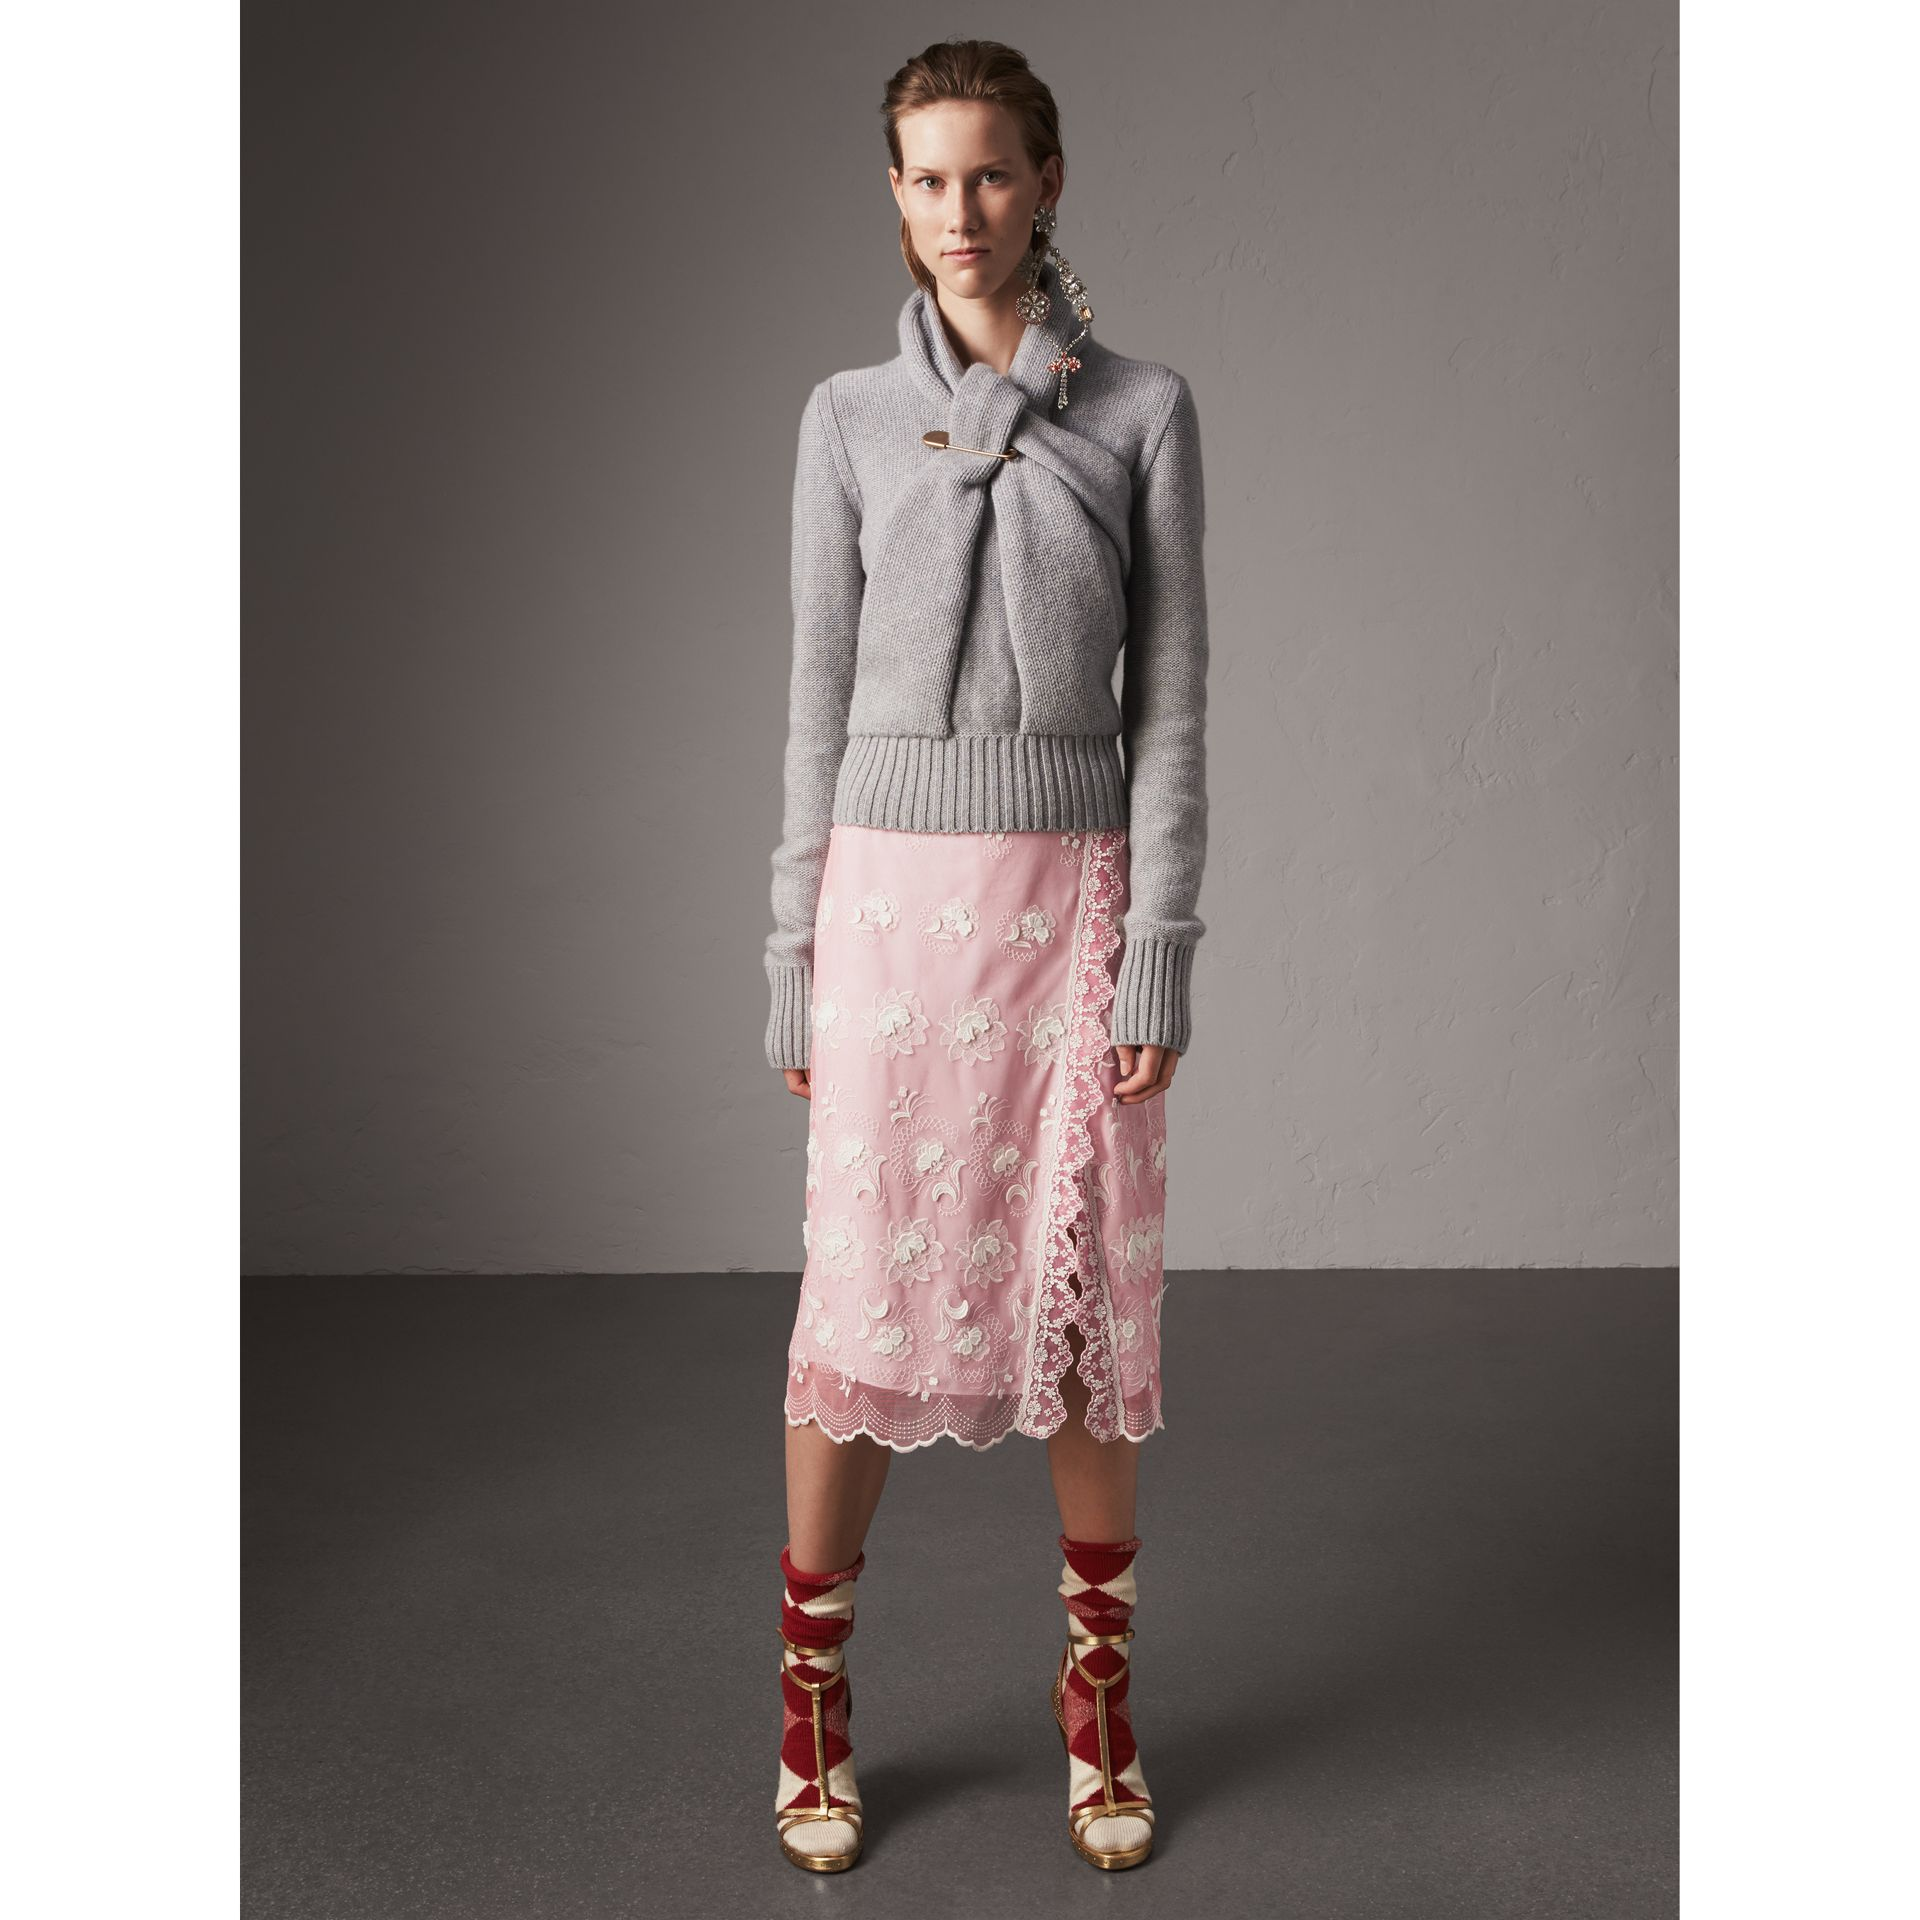 Chantilly Lace Trim Embroidered Tulle Skirt in Rose Pink/white - Women | Burberry - gallery image 4